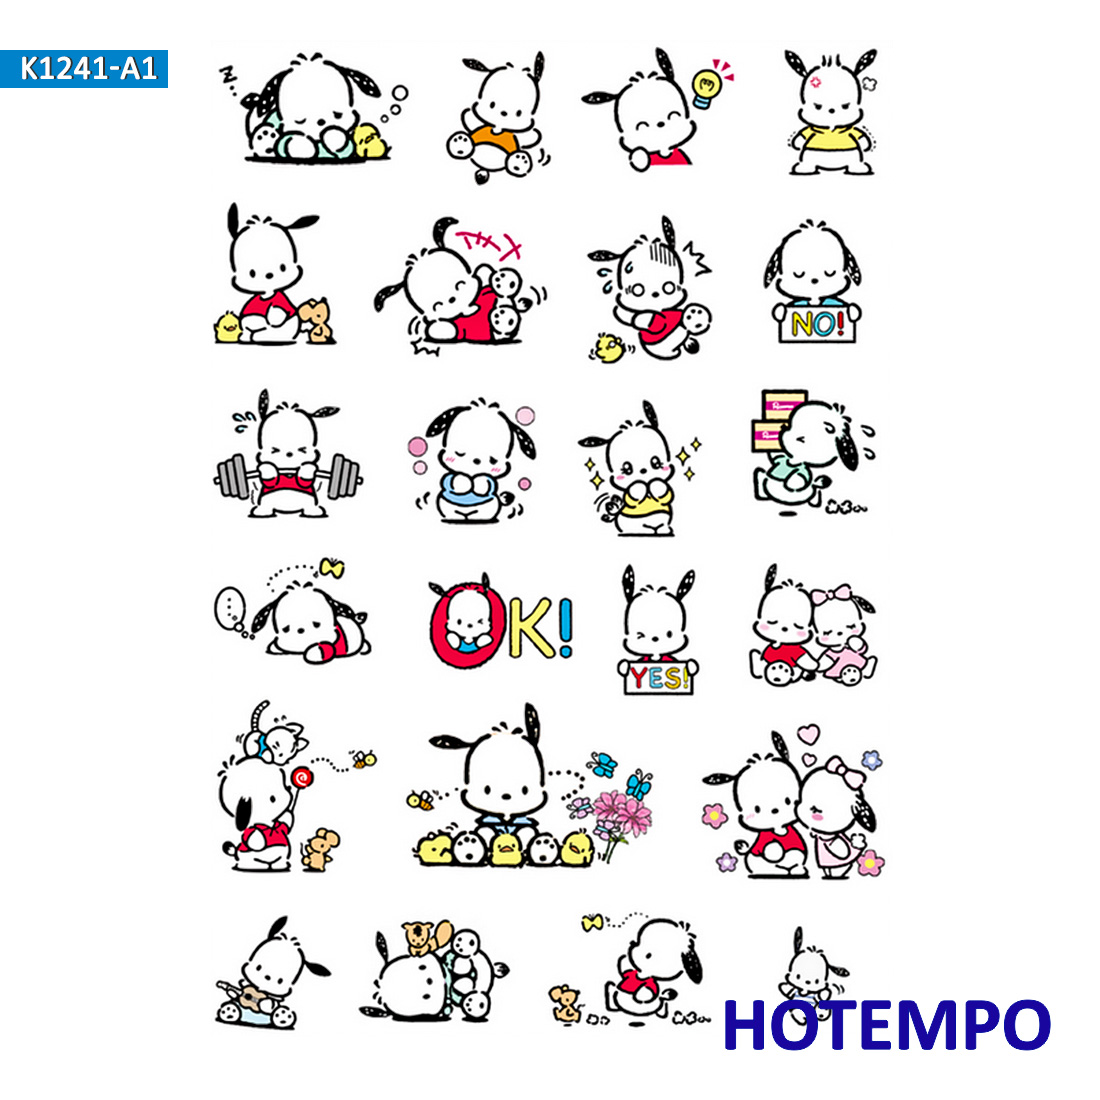 Sanrio Pochacco Stickers Cartoon Cute Dog For Girl Children Kids Gift DIY Letter Diary Scrapbooking Stationery Pegatinas Sticker